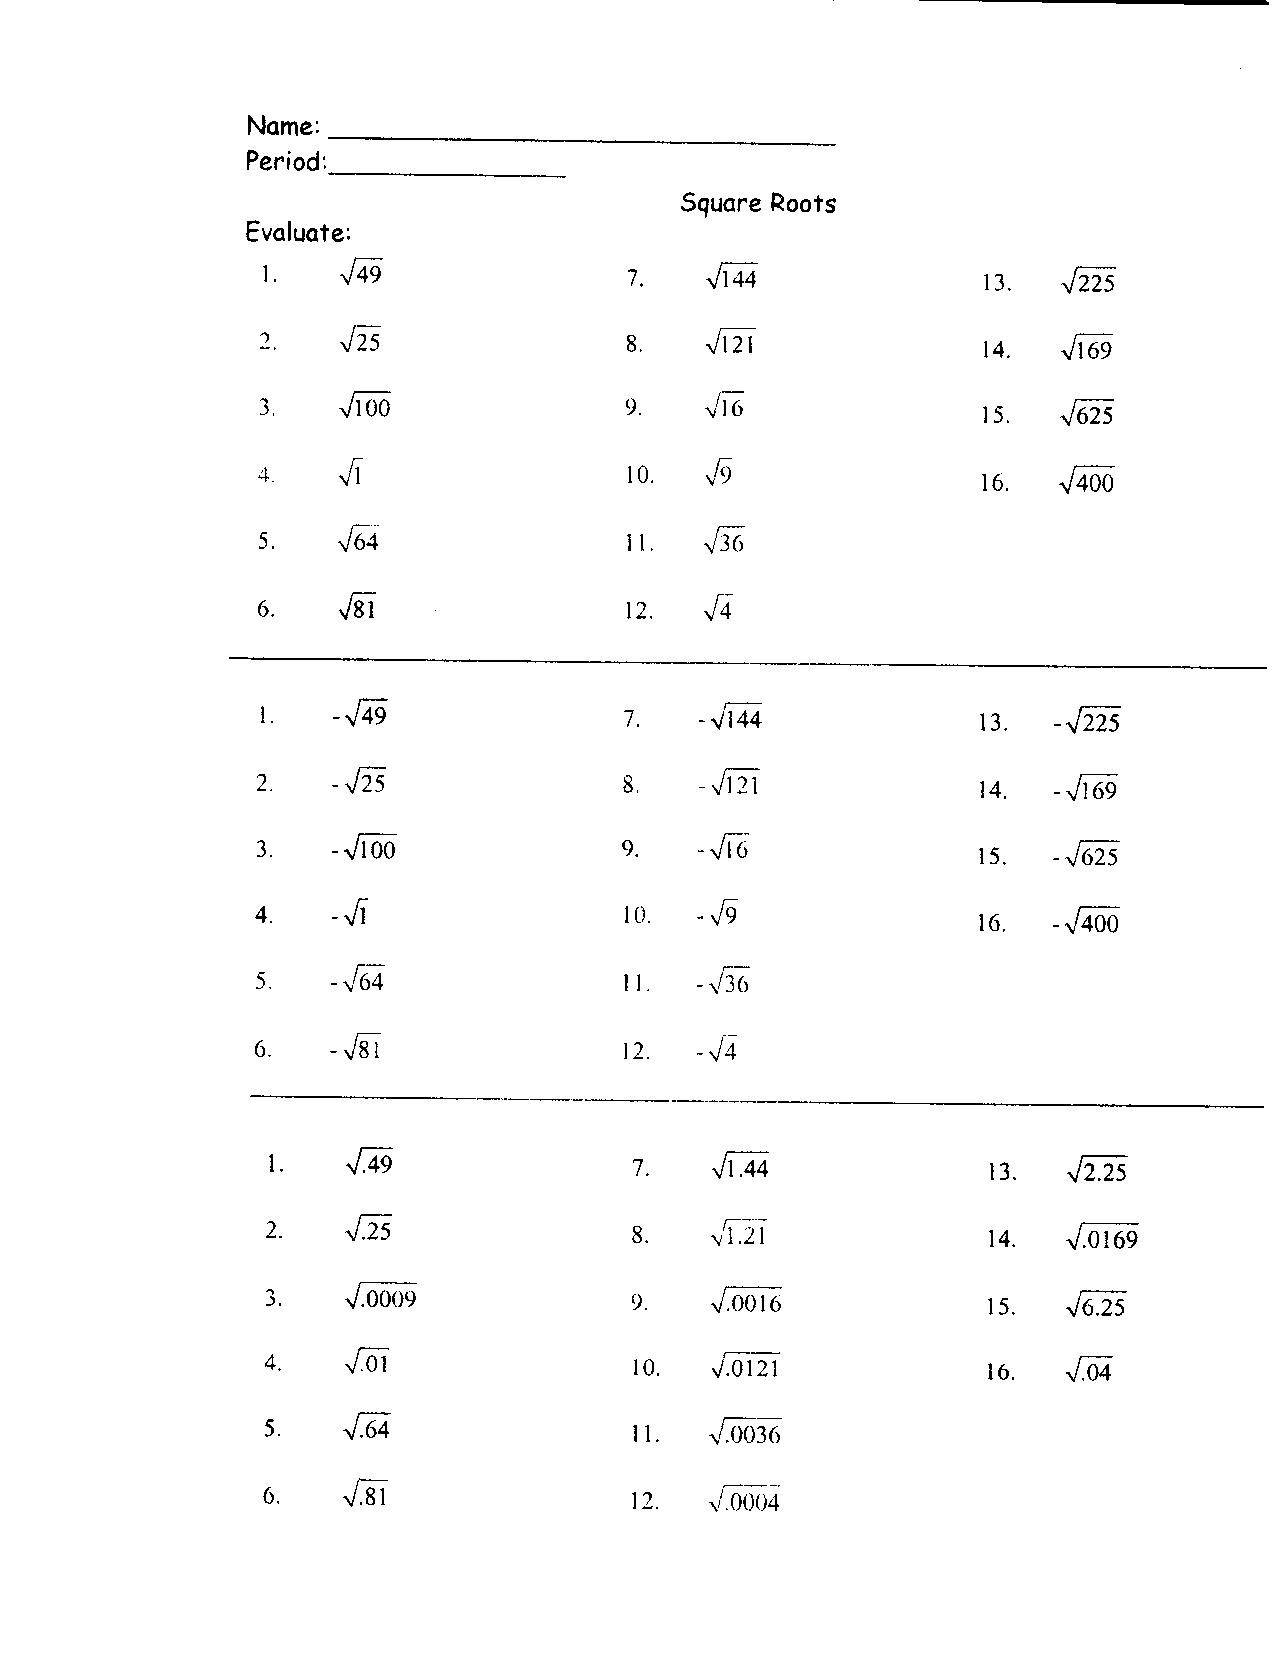 Square and Cube Roots Worksheet 31 Perfect Square Roots Worksheet Worksheet Resource Plans